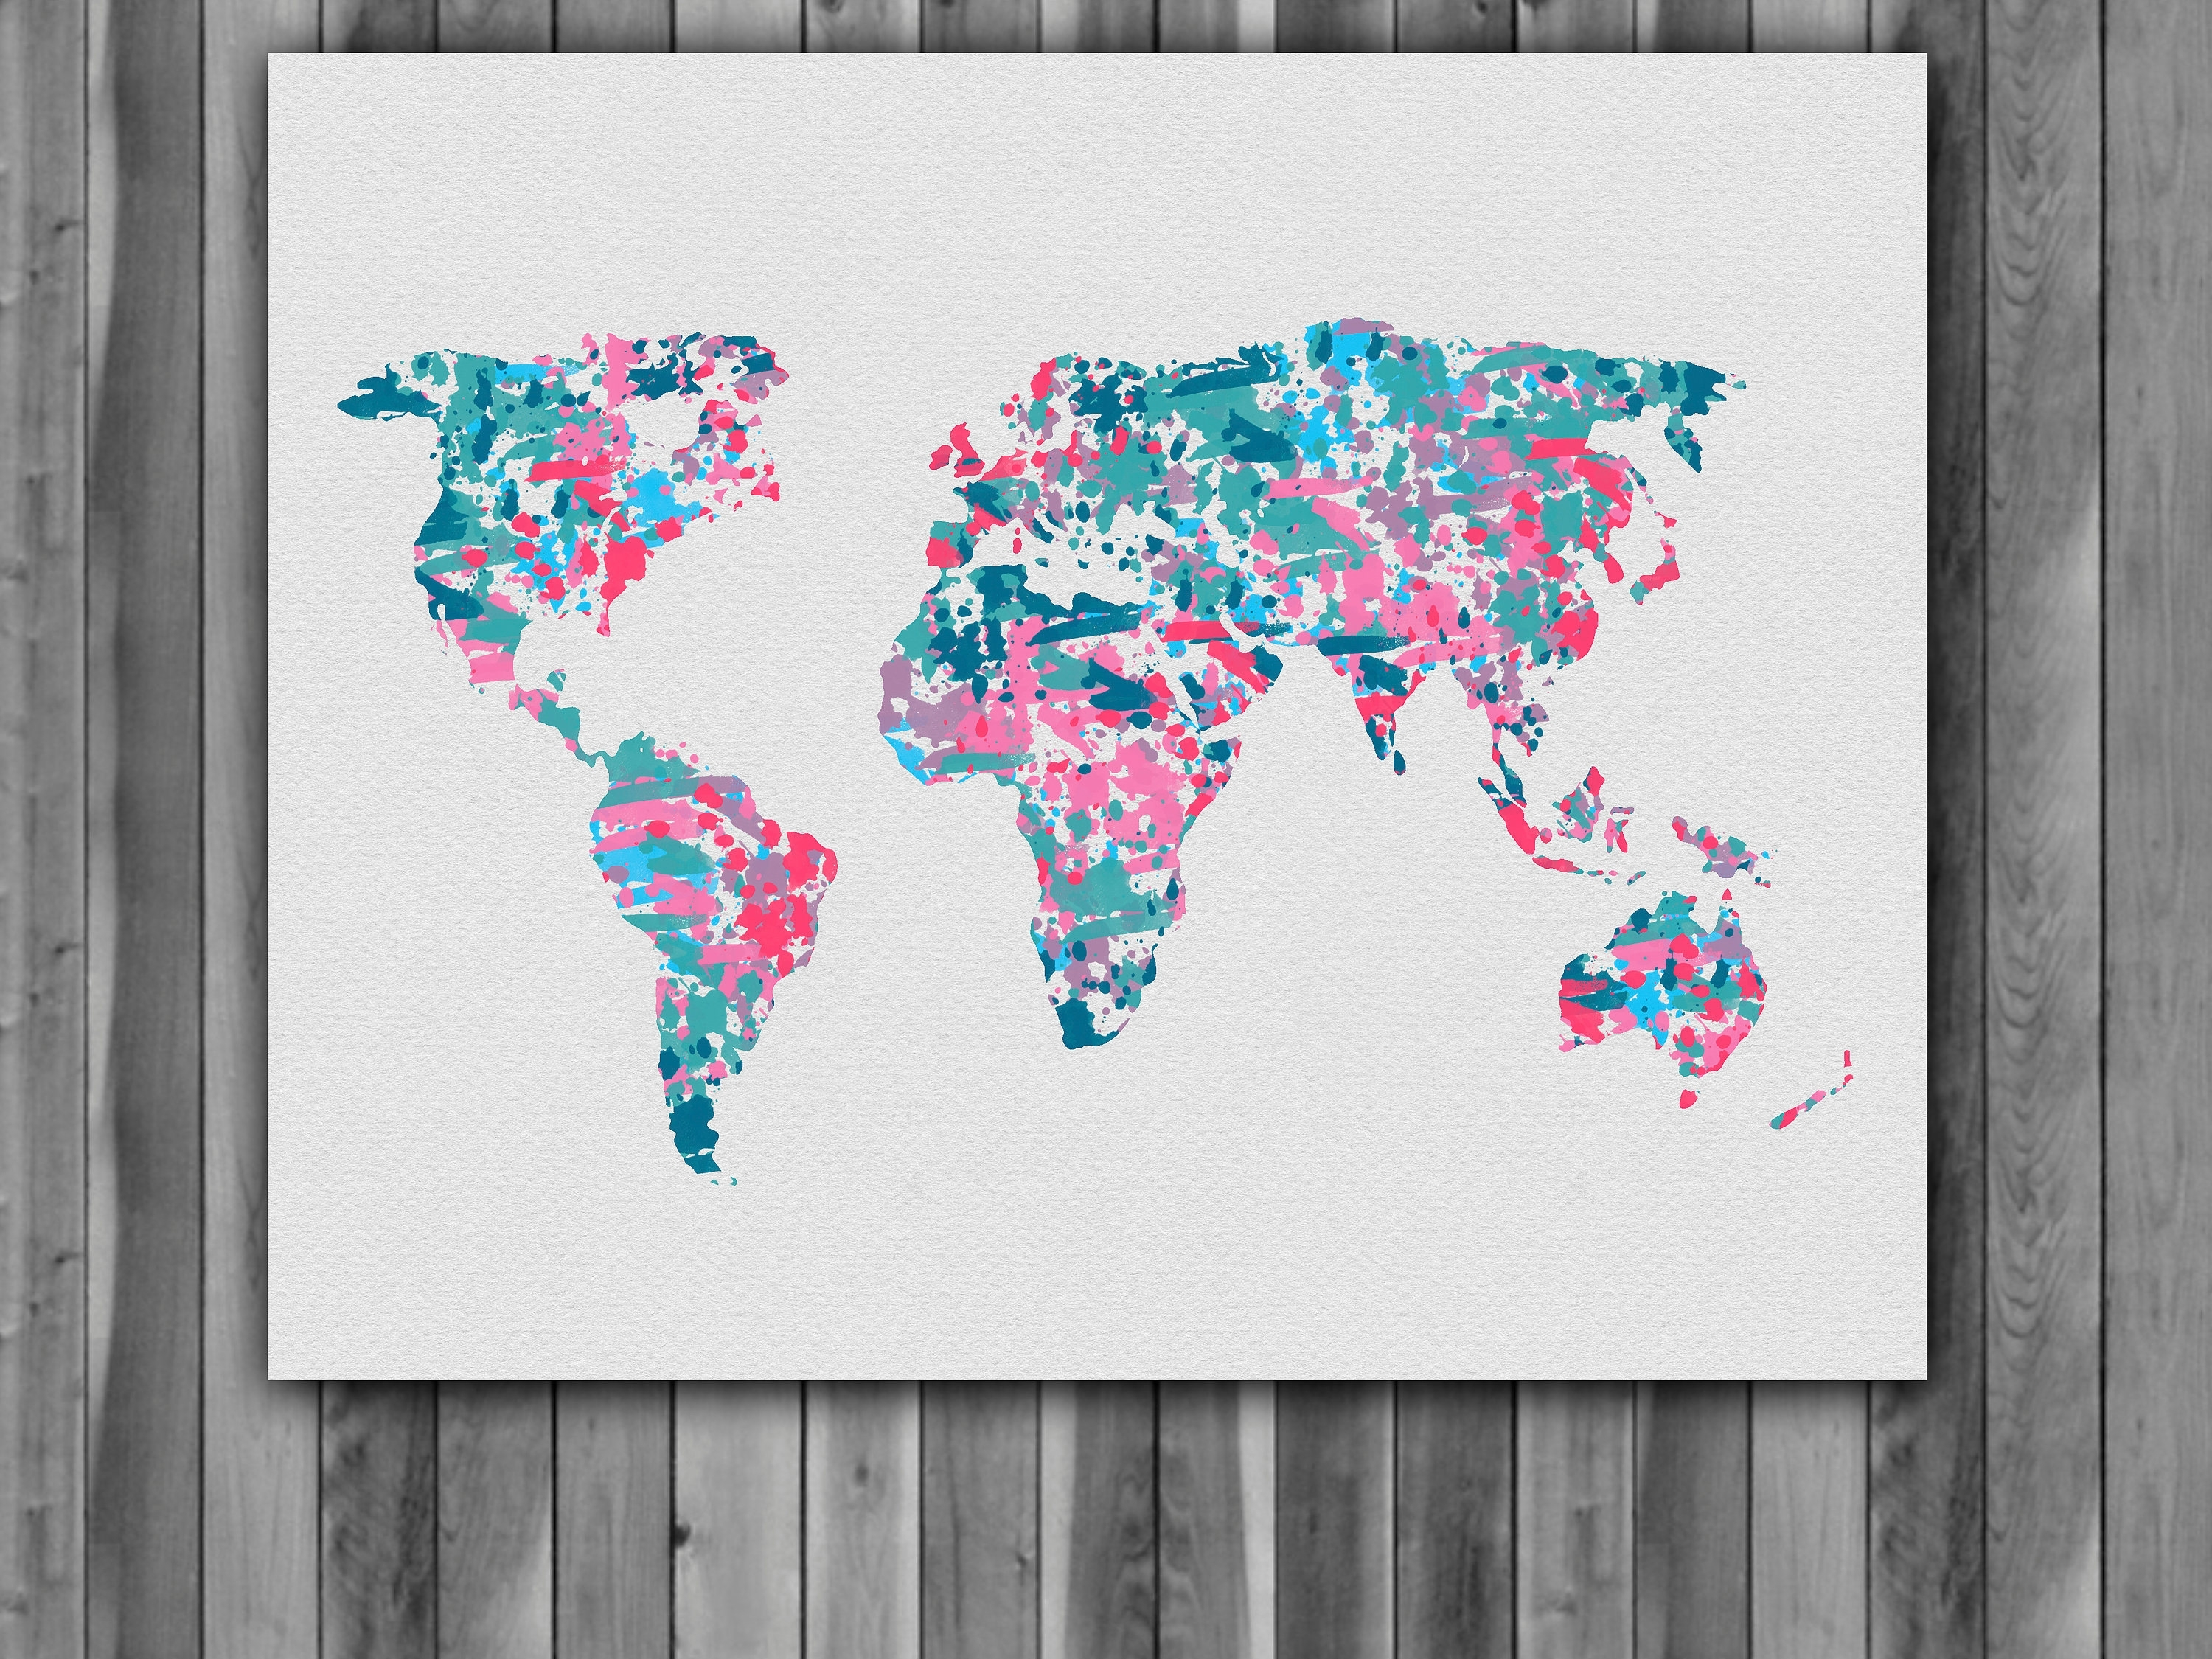 World Map Watercolor Print, World Map Art, World Map Painting, World Throughout World Map Wall Art For Kids (Photo 4 of 20)